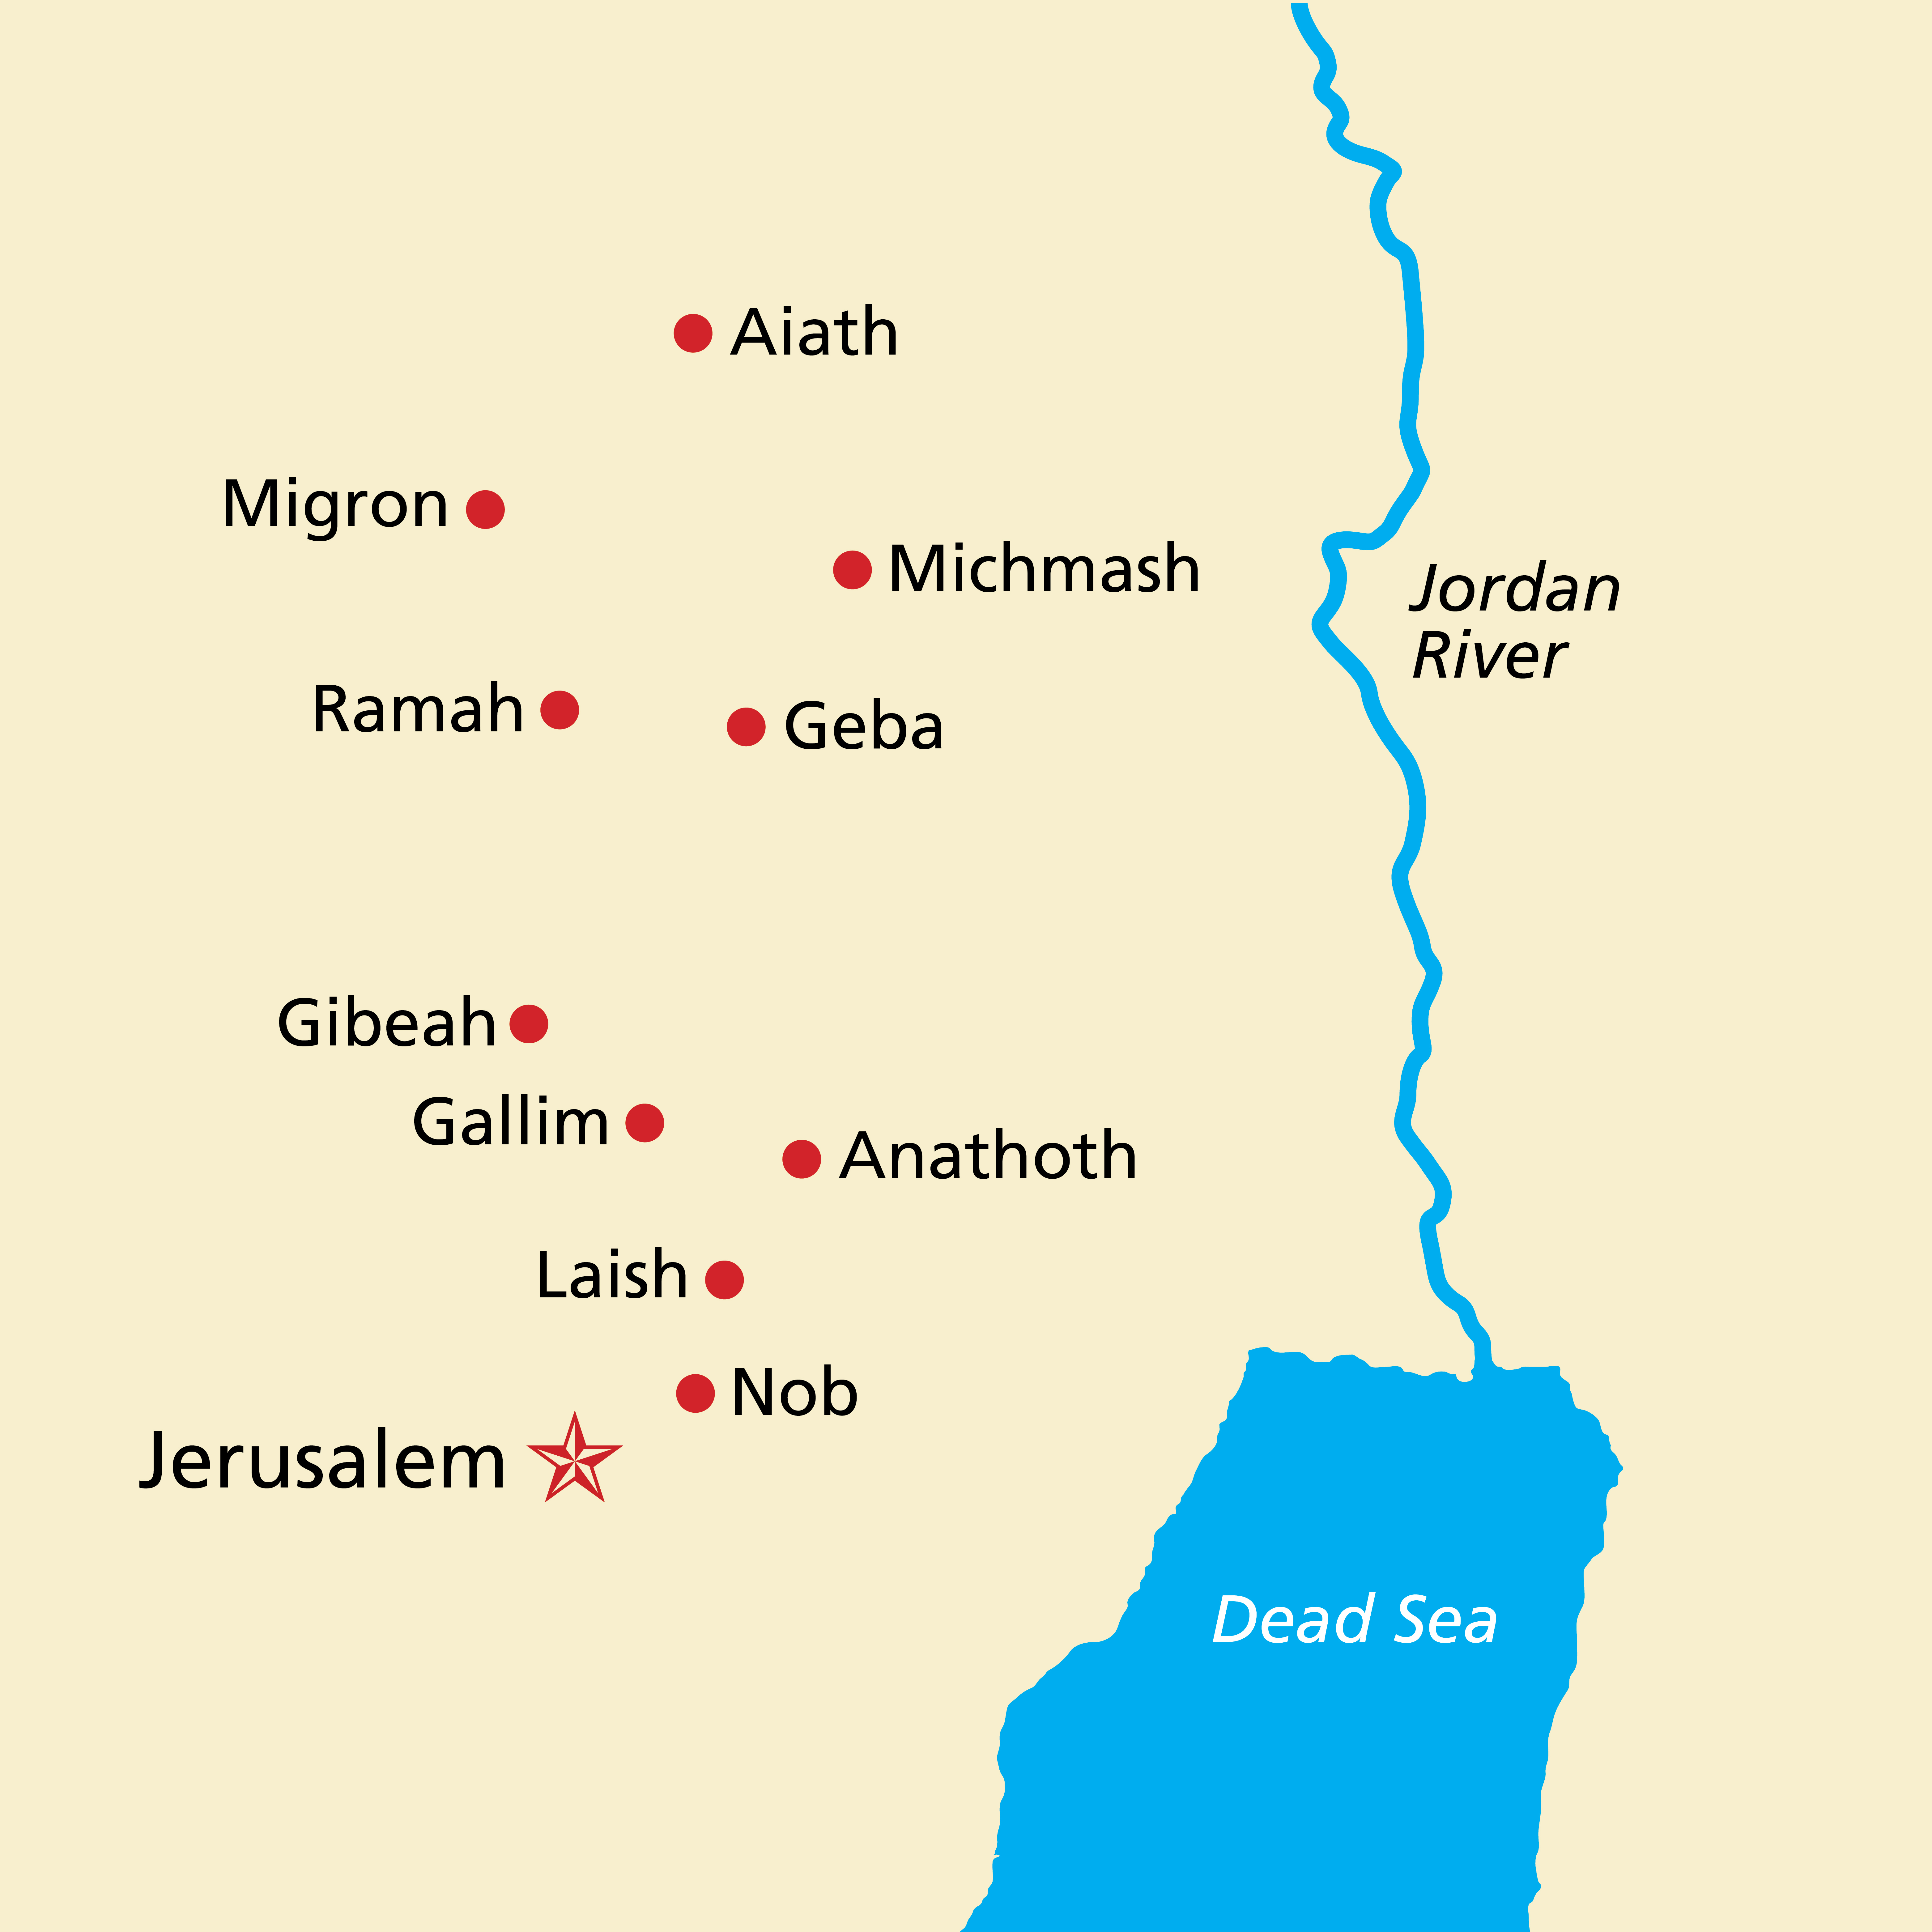 A map of the Holy Land, including Jerusalem, the Dead Sea, and the Jordan River.